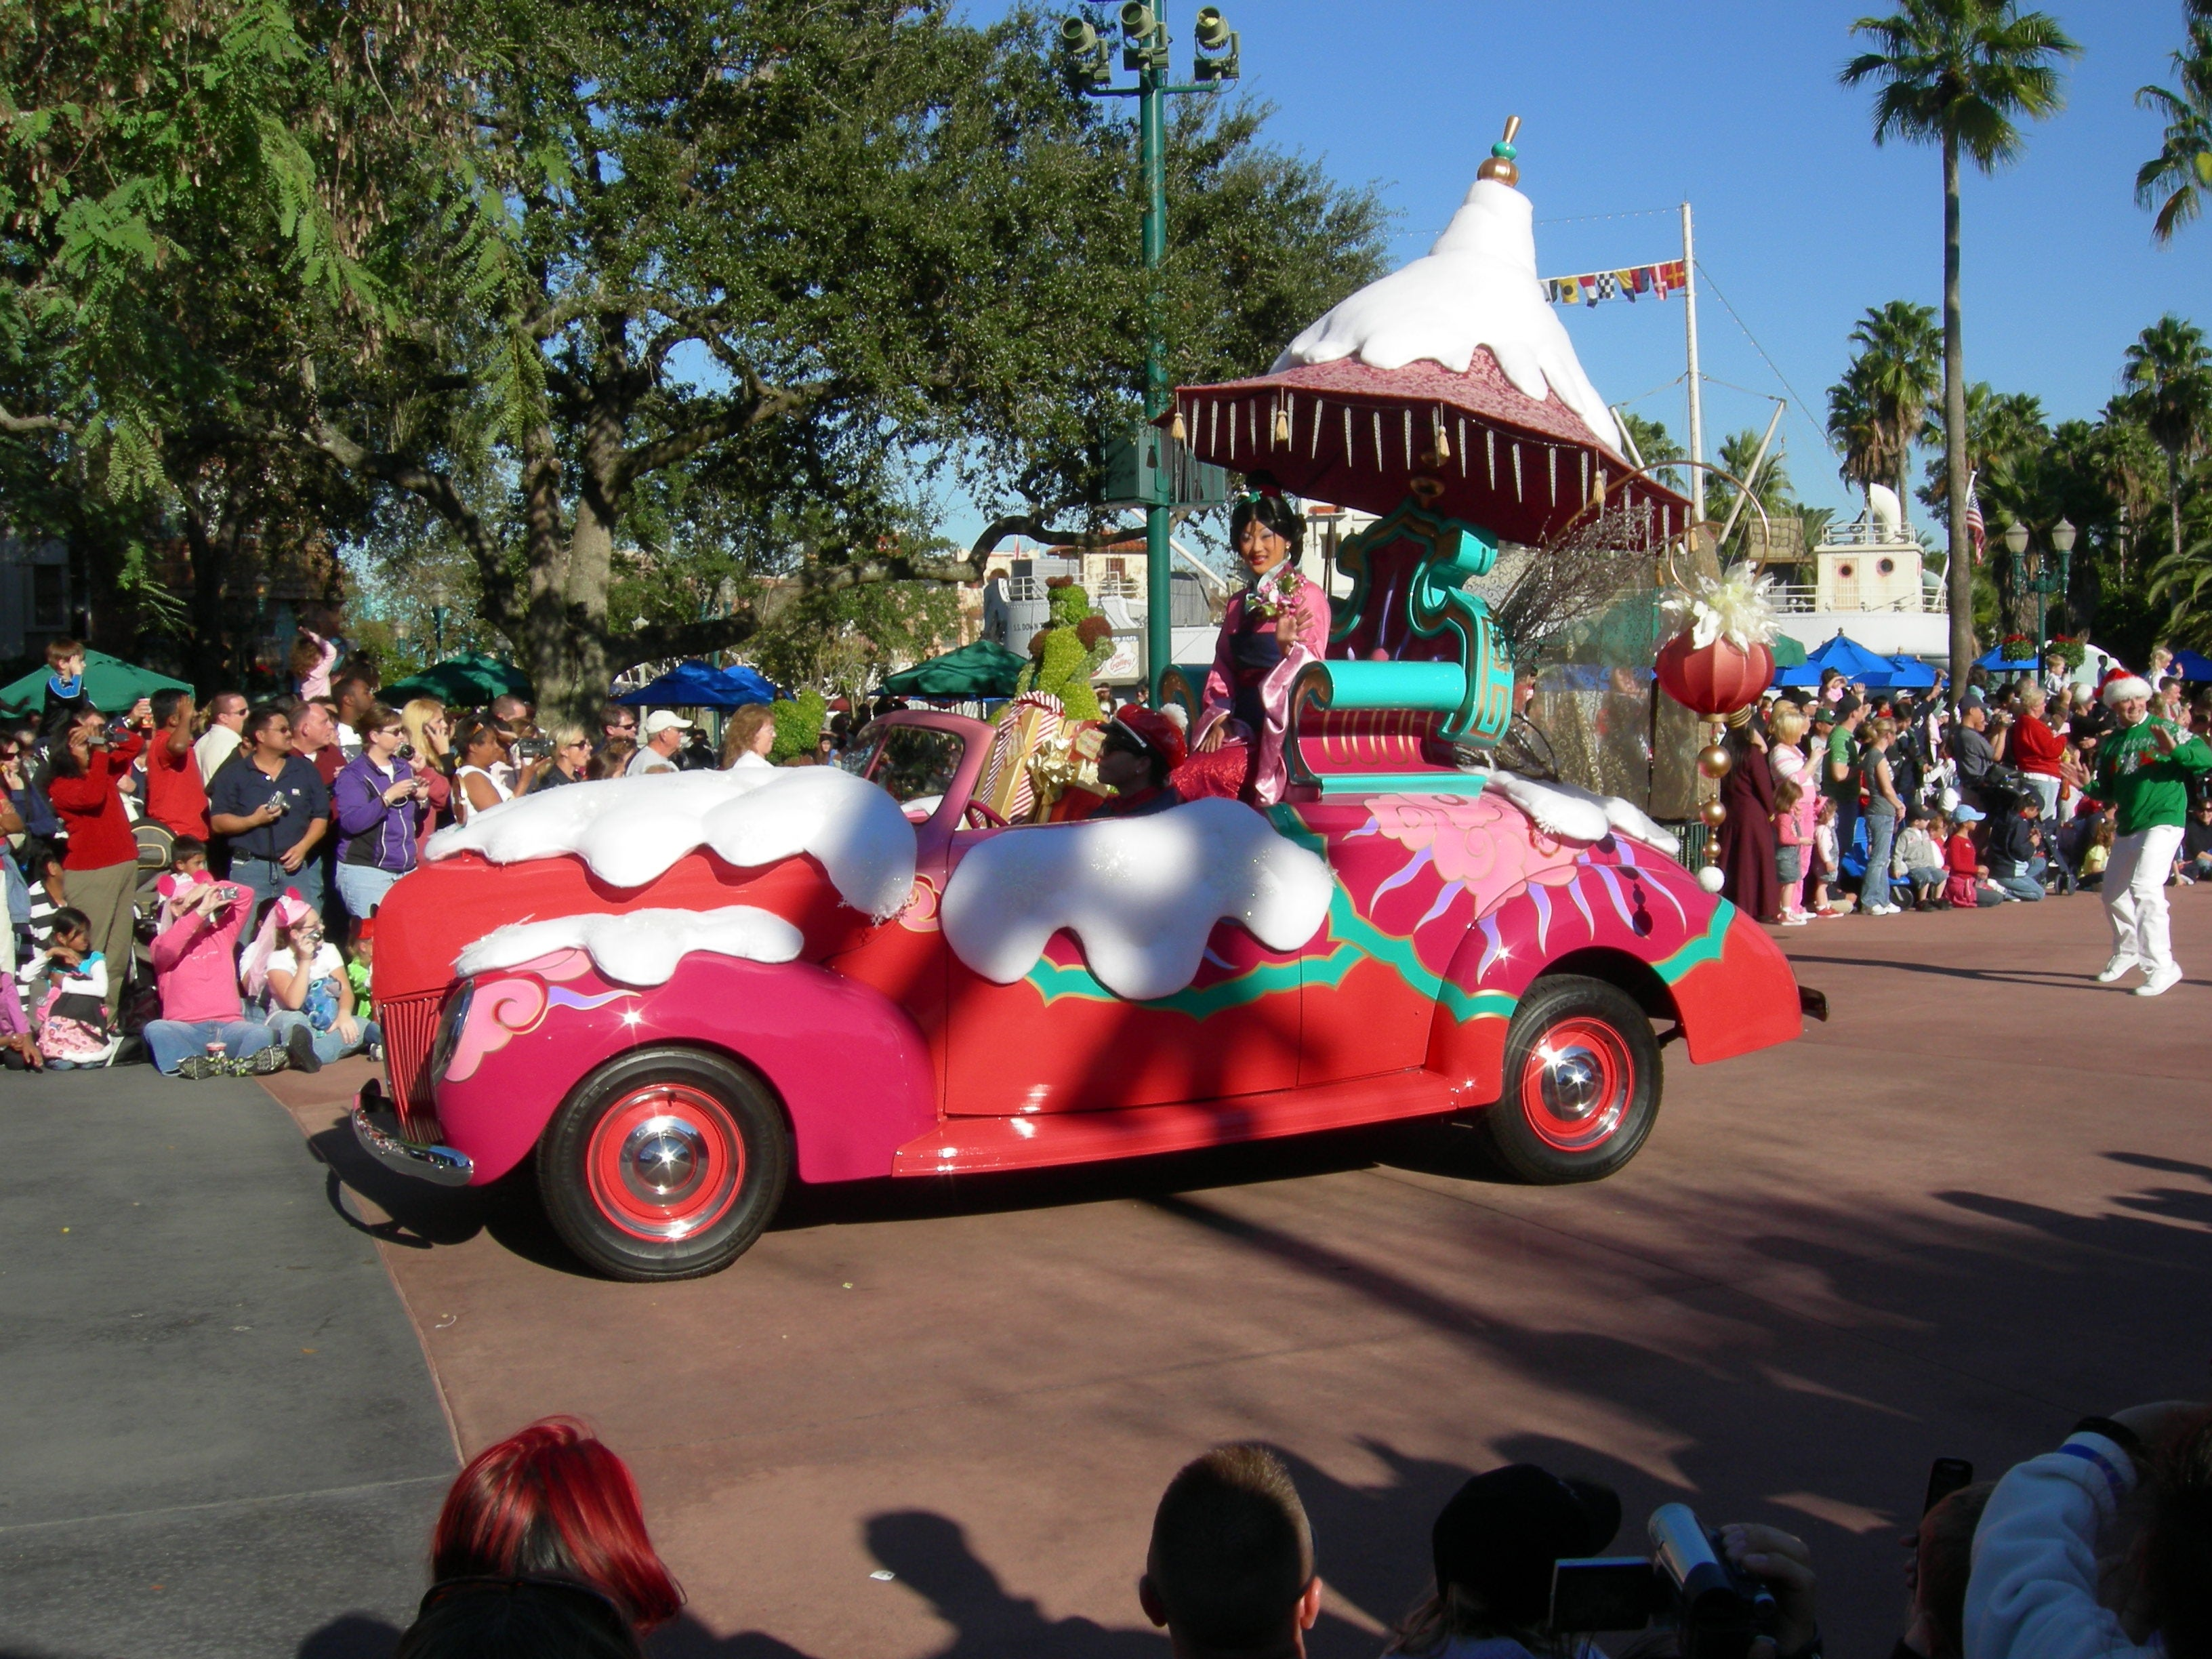 Color rosa en Disney's Hollywood Studios